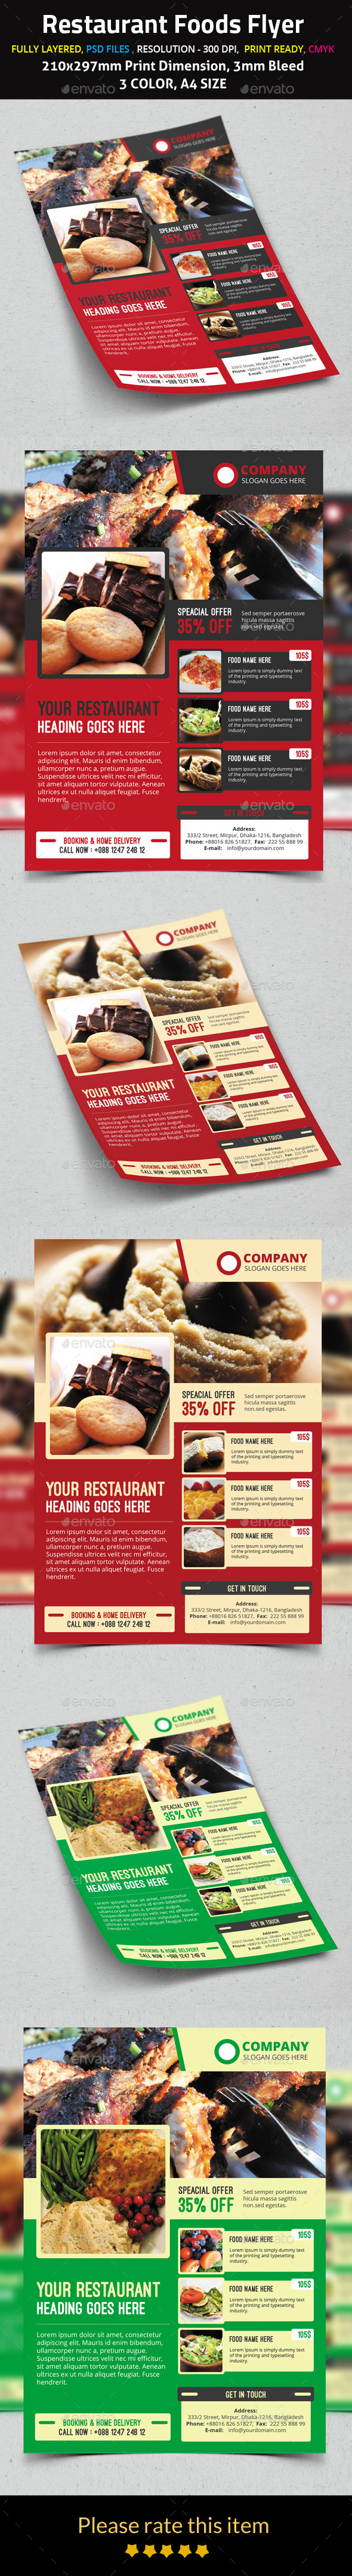 Restaurant Foods Flyer - Restaurant Flyers